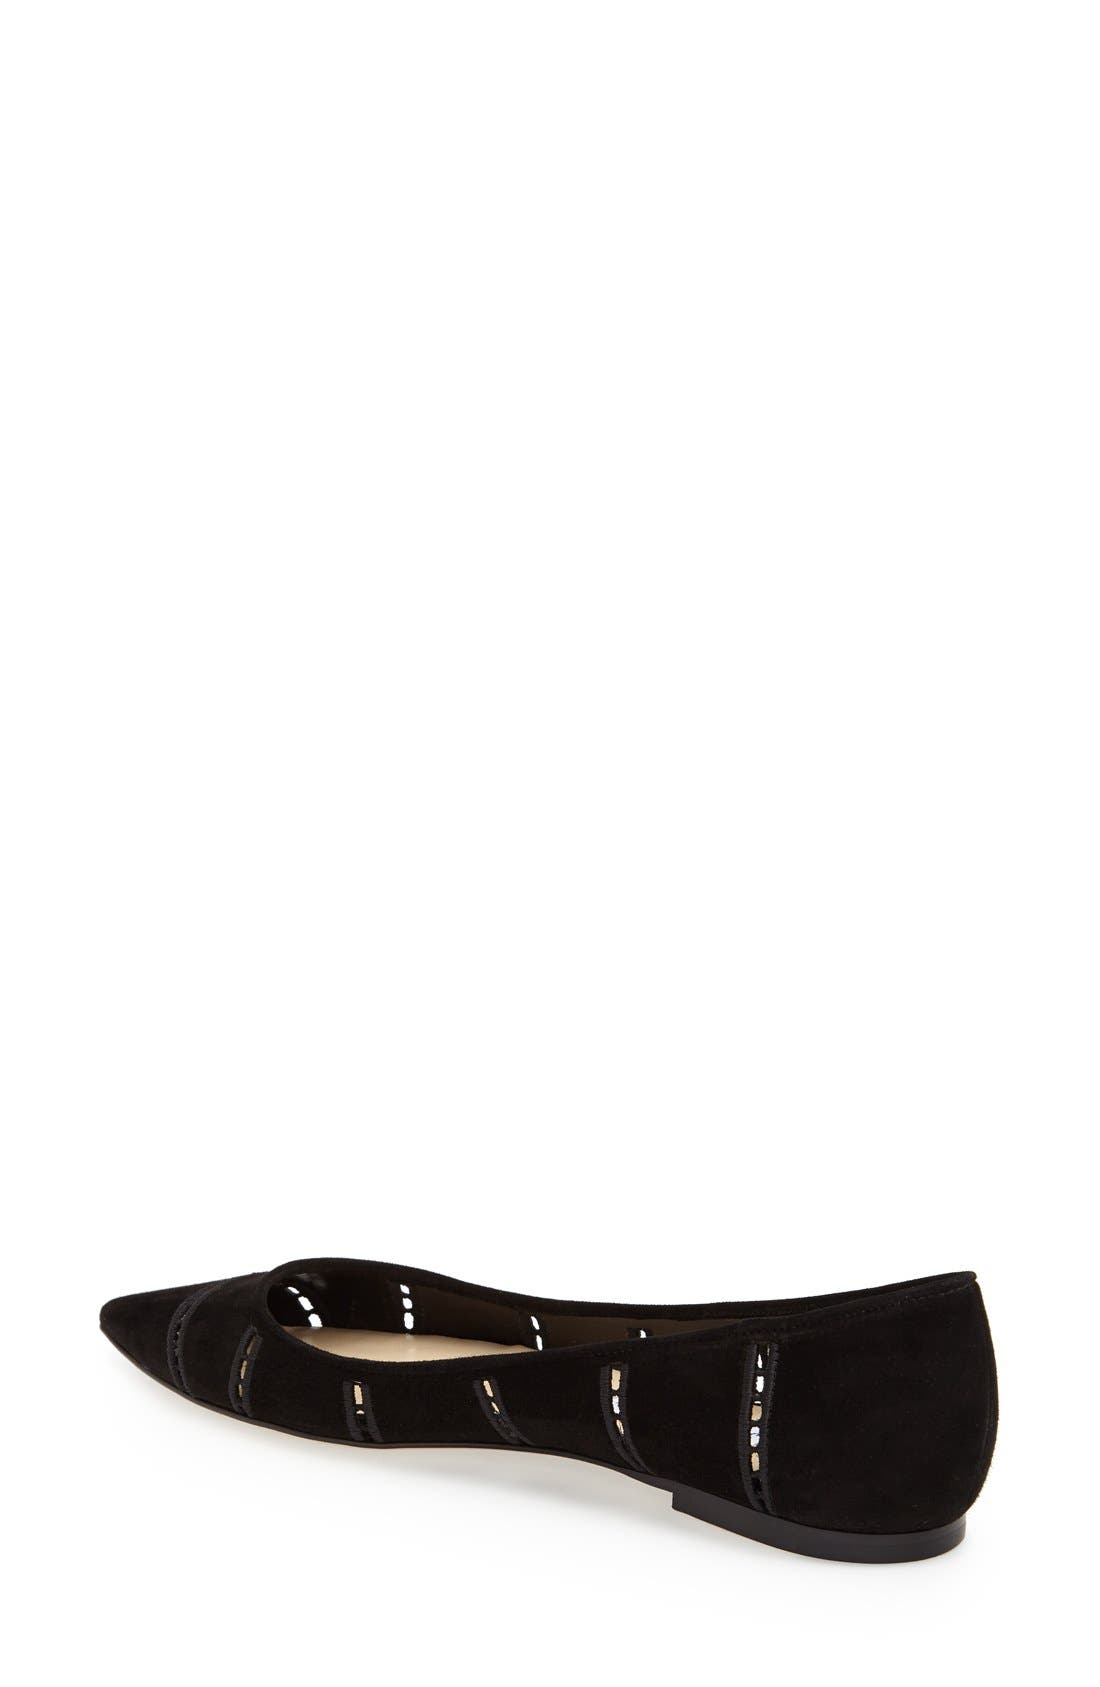 Alternate Image 2  - Jimmy Choo 'Alina' Pointy Toe Perforated Broderie Anglaise Suede Flat (Women)